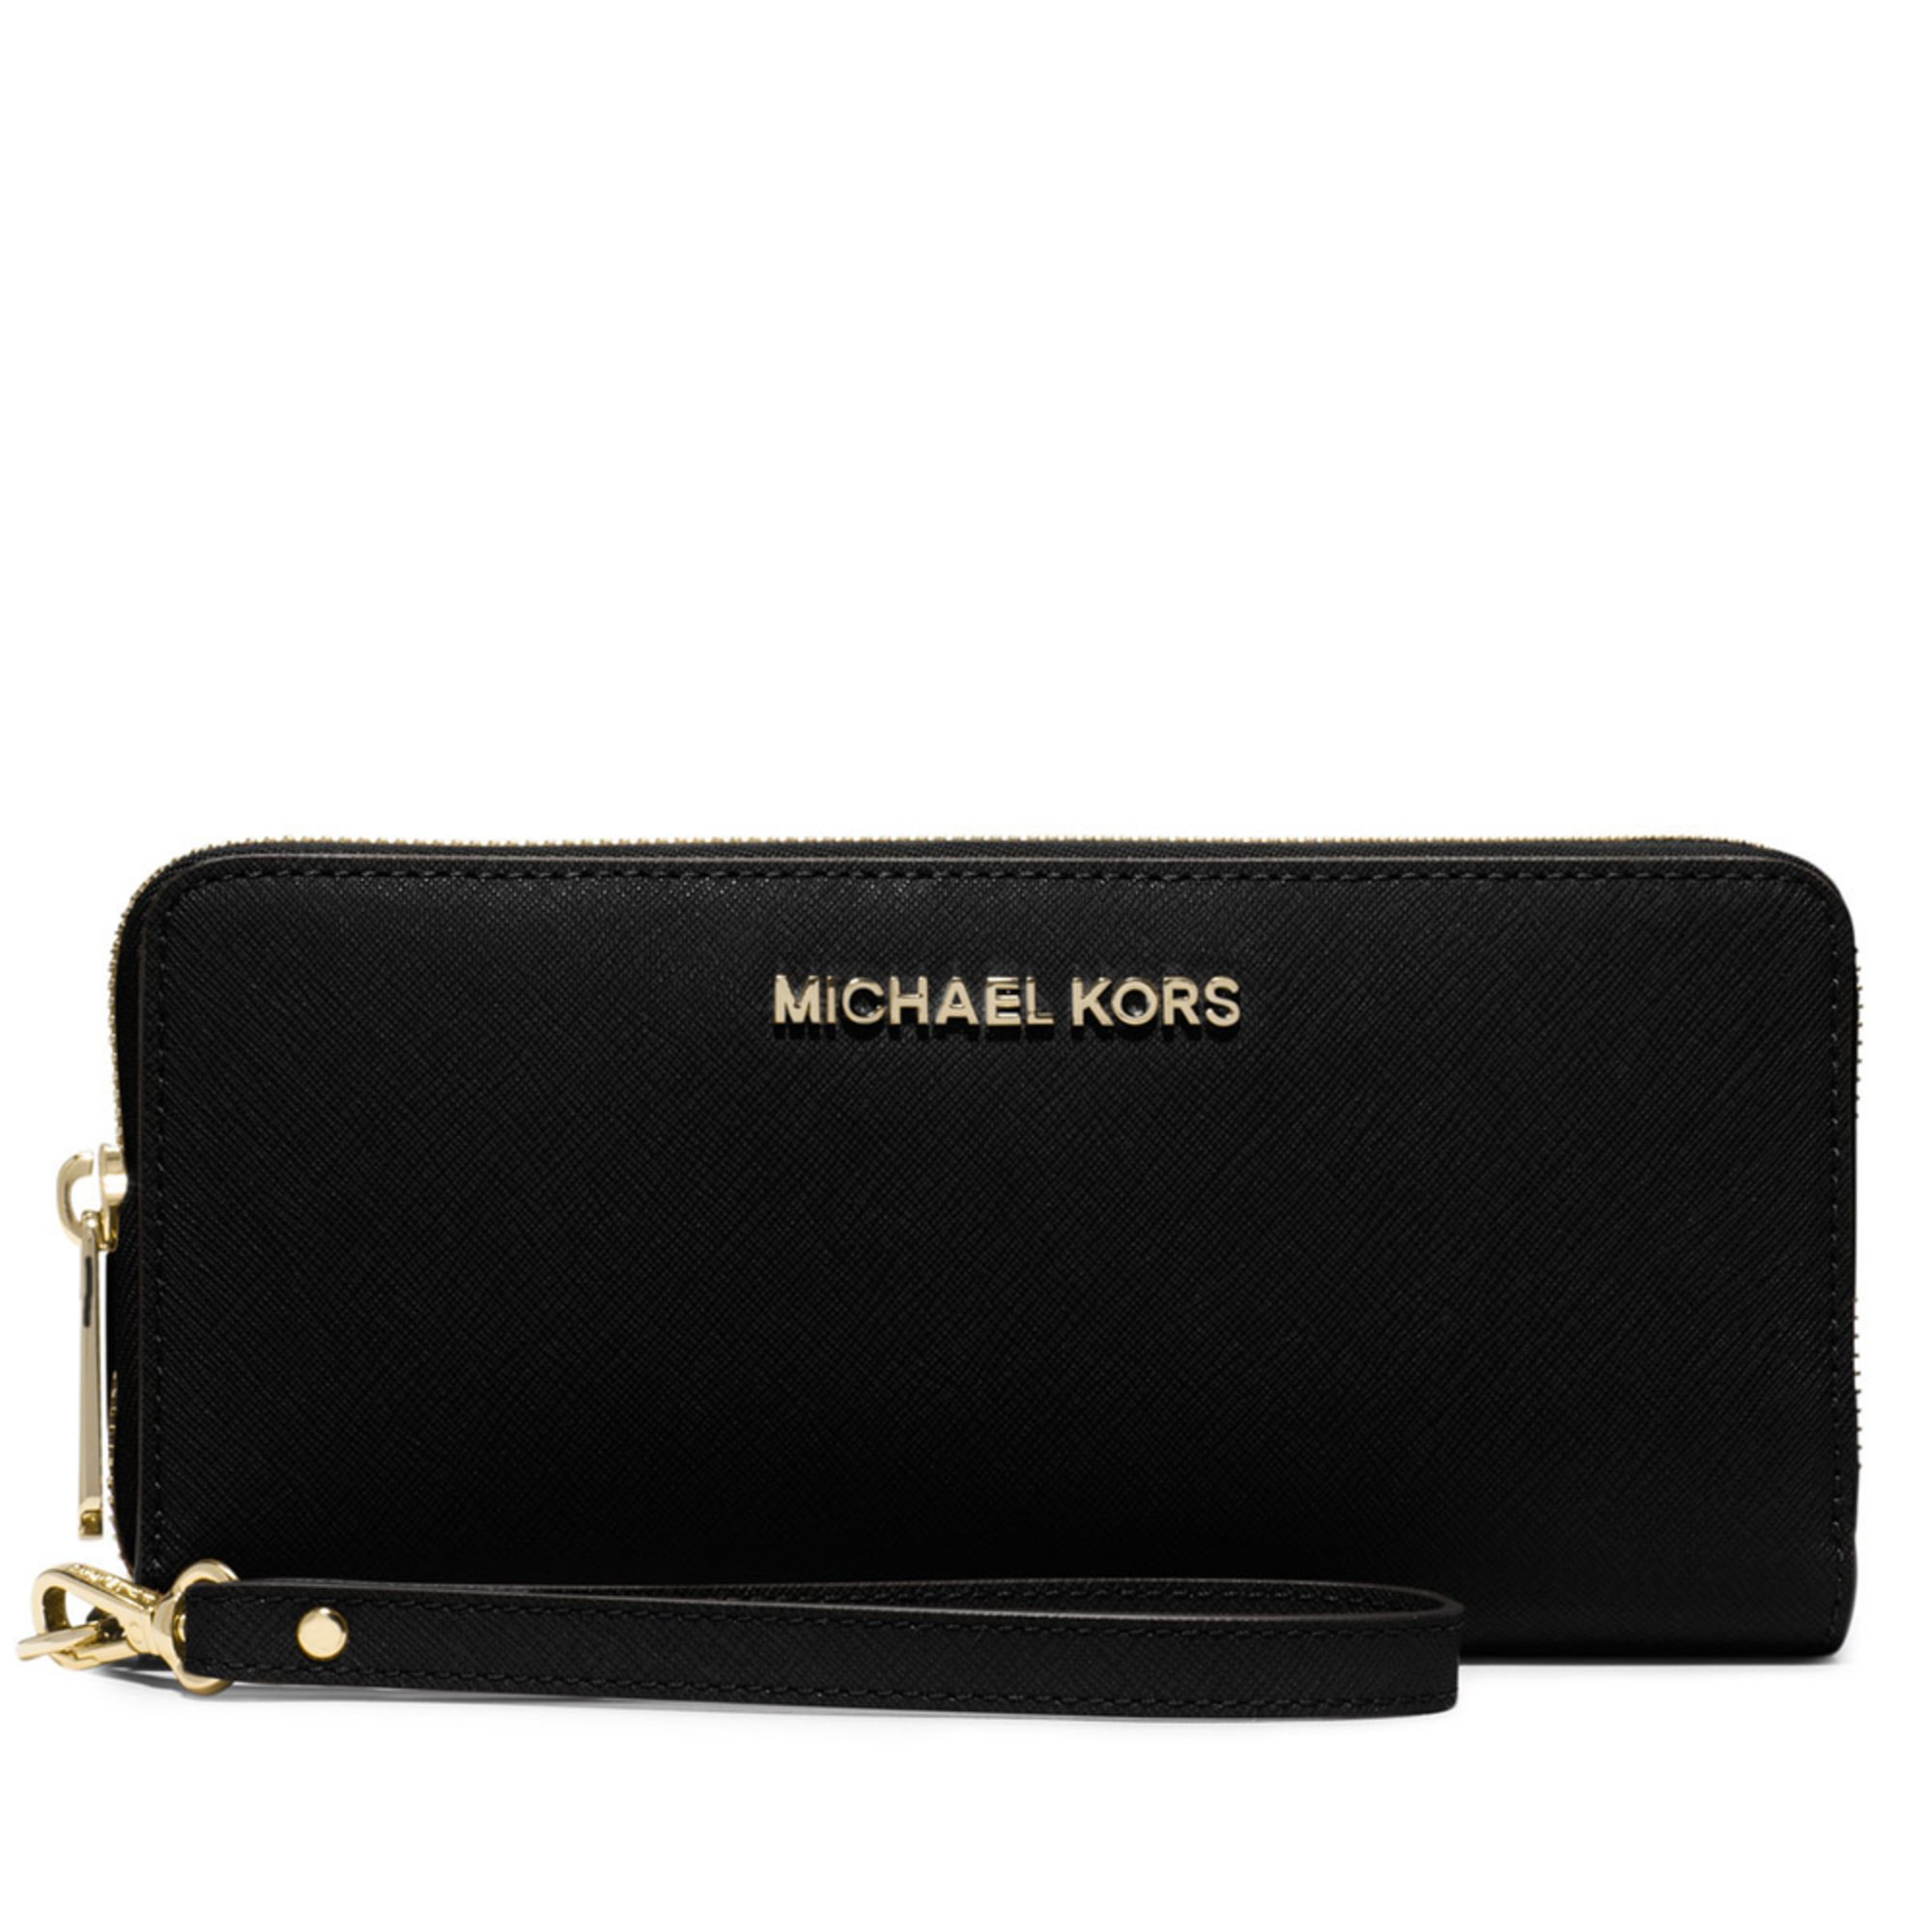 e4550e11d8c96 Michael Kors Jet Set Travel Continental Wristlet Black